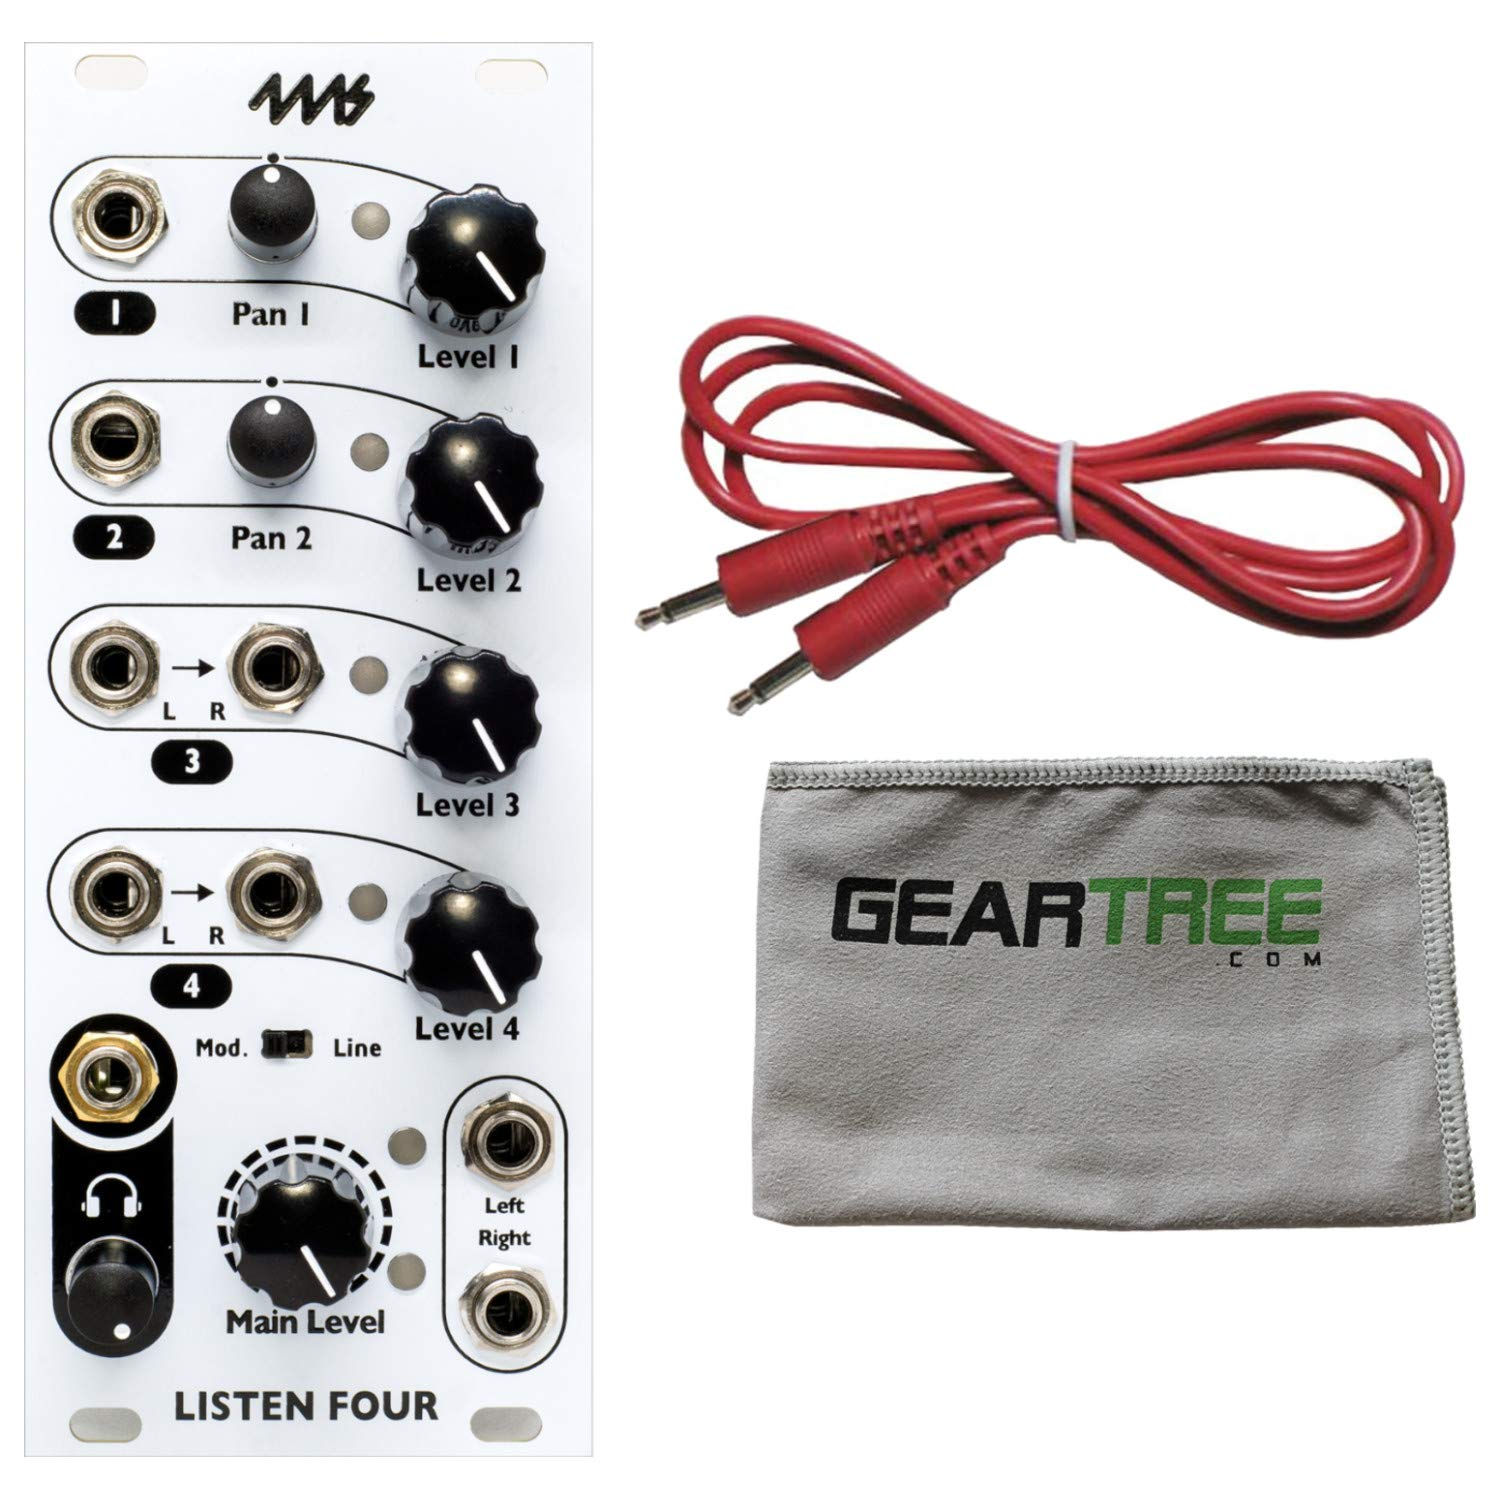 4MS L4 Listen Four Eurorack Synth Module w/Geartree Cloth and Patch Cable